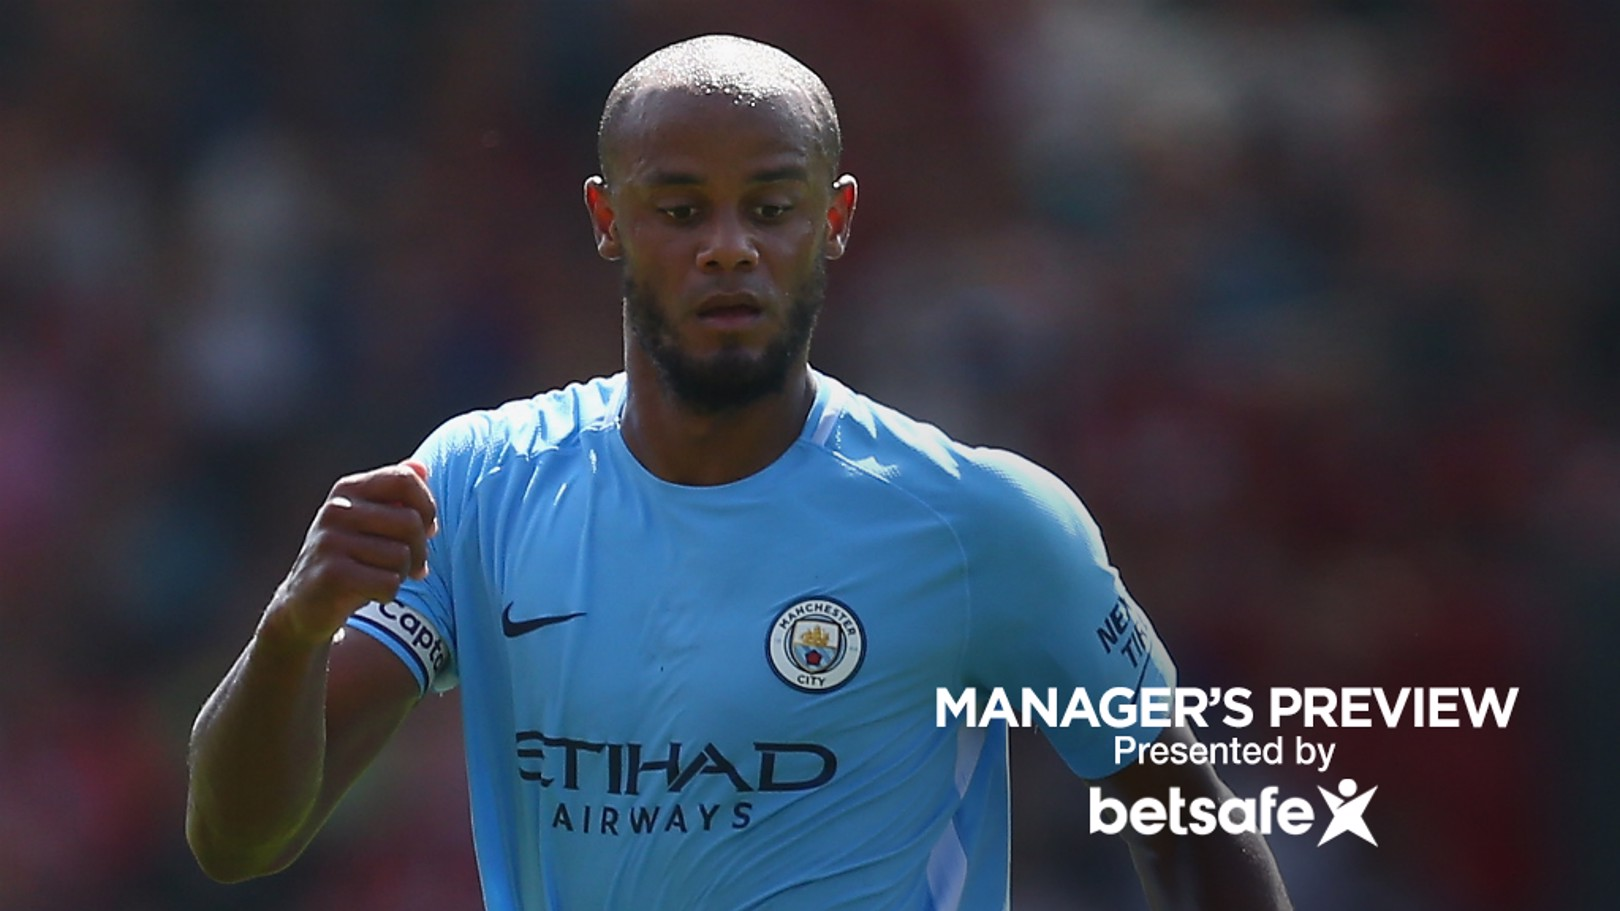 Guardiola: Kompany prestes a regressar